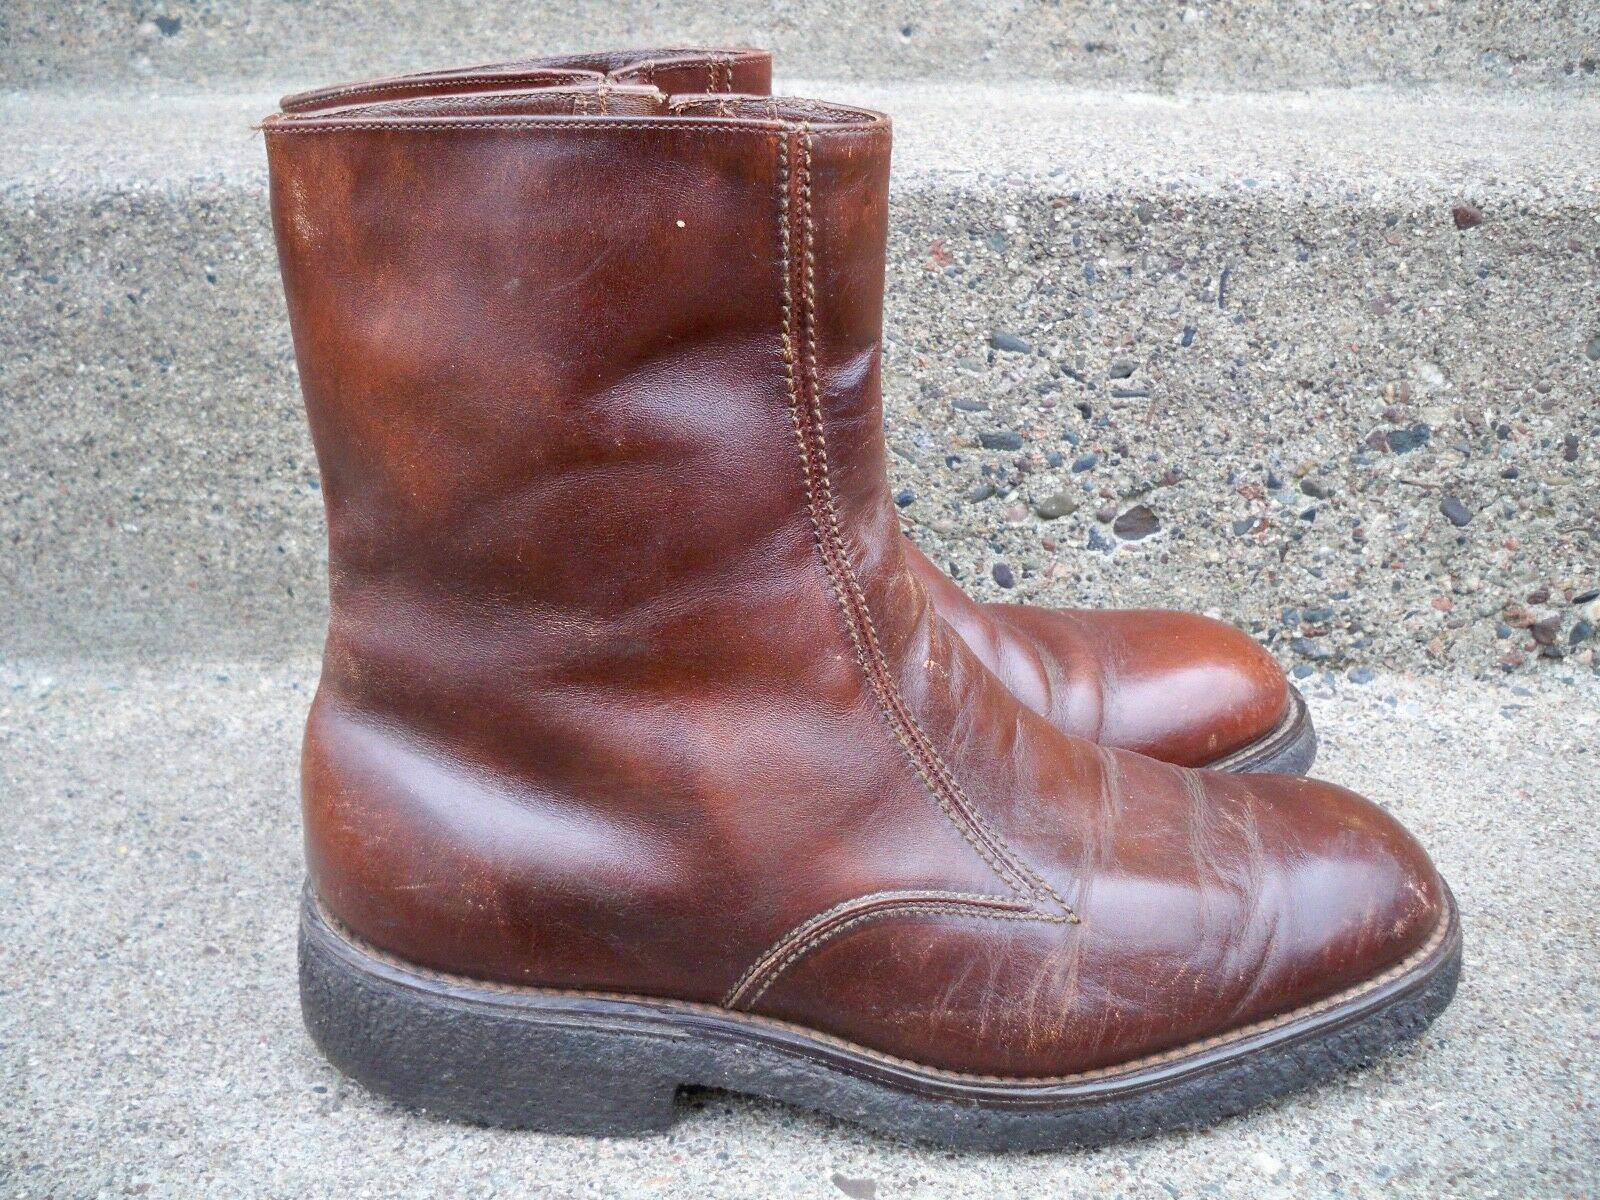 4e8b959f46 Vintage Leather Men s Work Wool Lined Lined Lined Insulated Beatle Riding  Mod Hippie Boots 9 d7942f